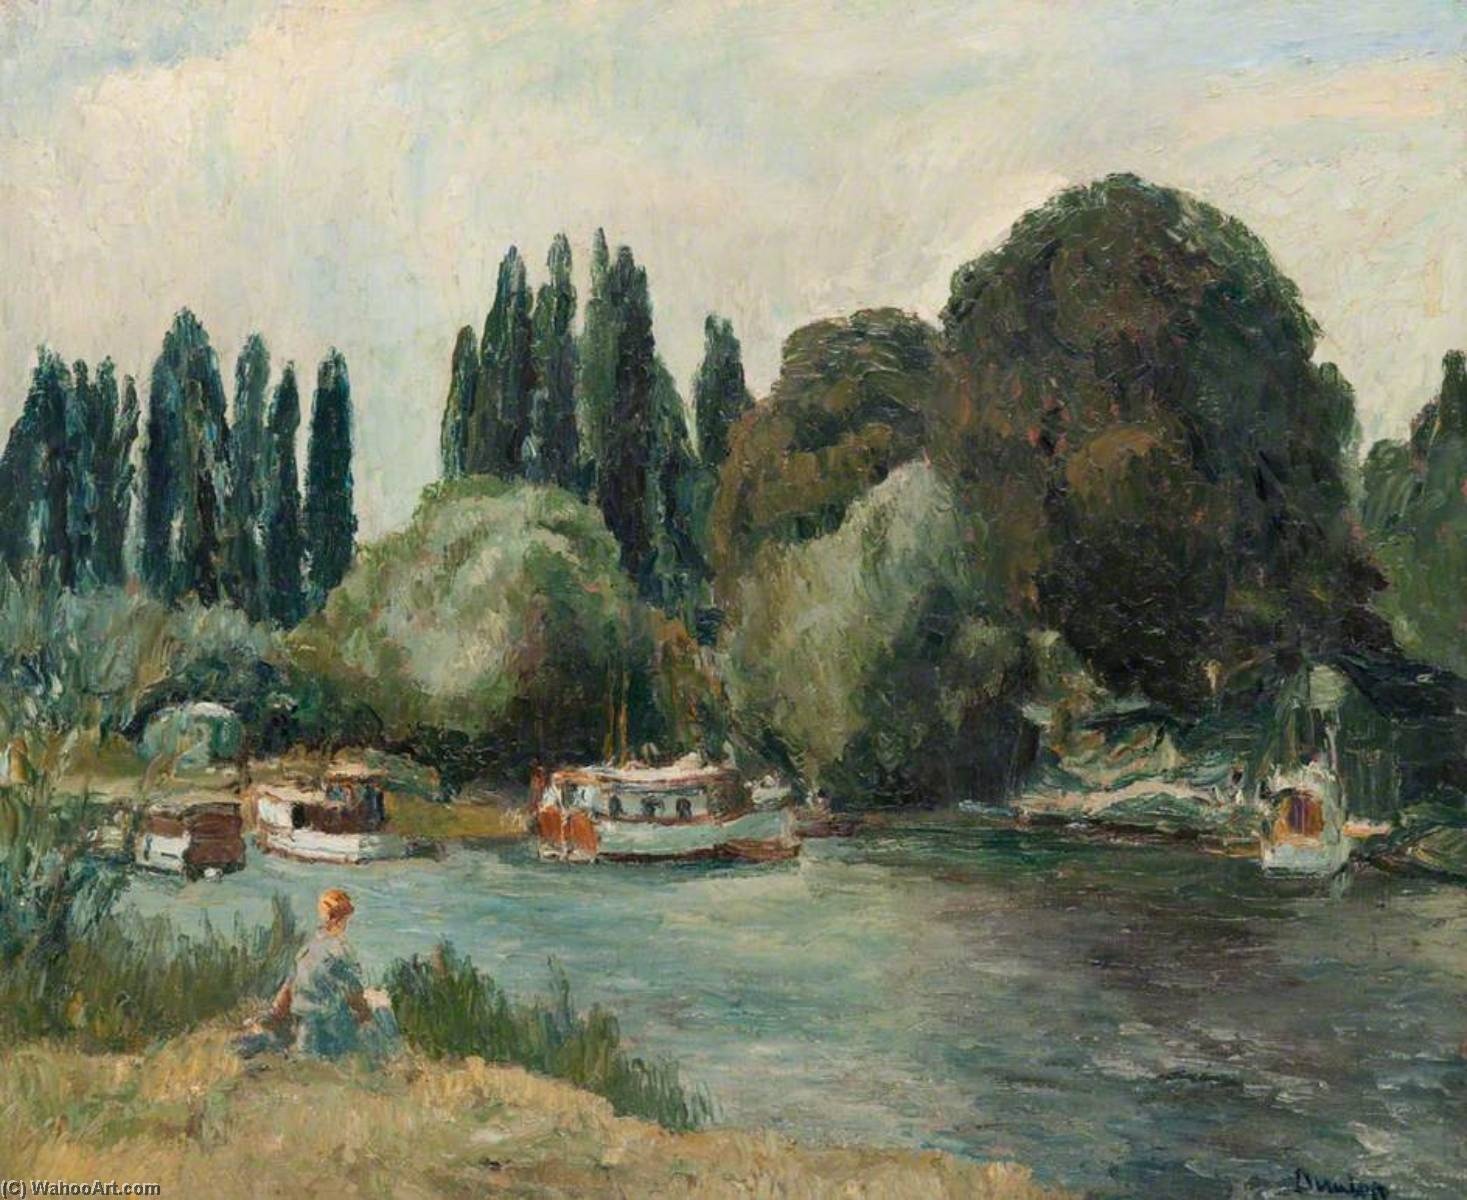 Barco creek at shepperton, óleo sobre tela por Ronald Ossory Dunlop (1894-1973, Ireland)